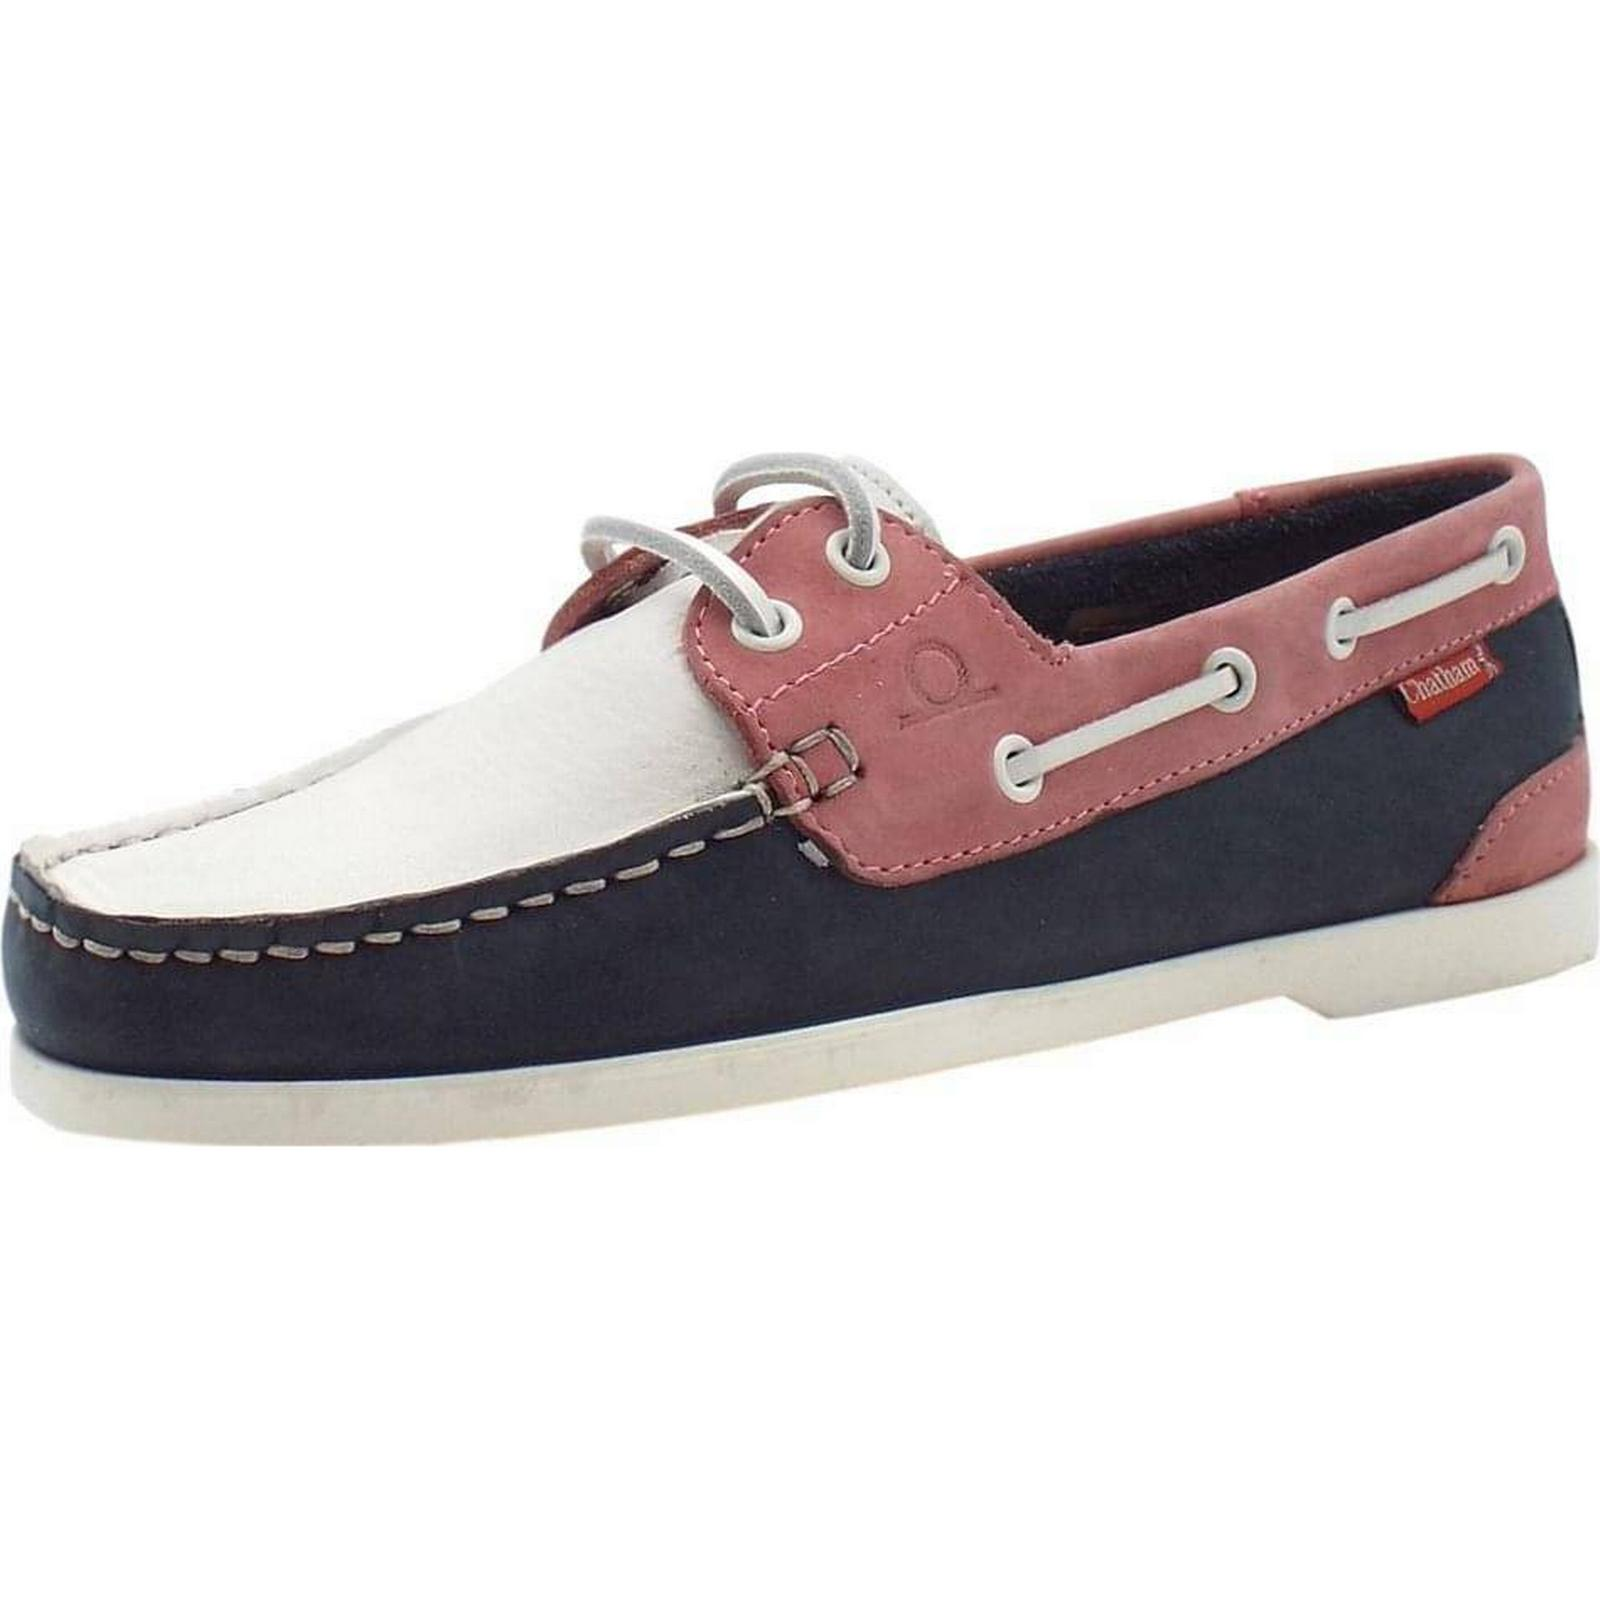 Chatham Marine WILLOW CHATHAM CLASSICE LADIES DECK H Size: 8, Colour: Colour: 8, d300ed